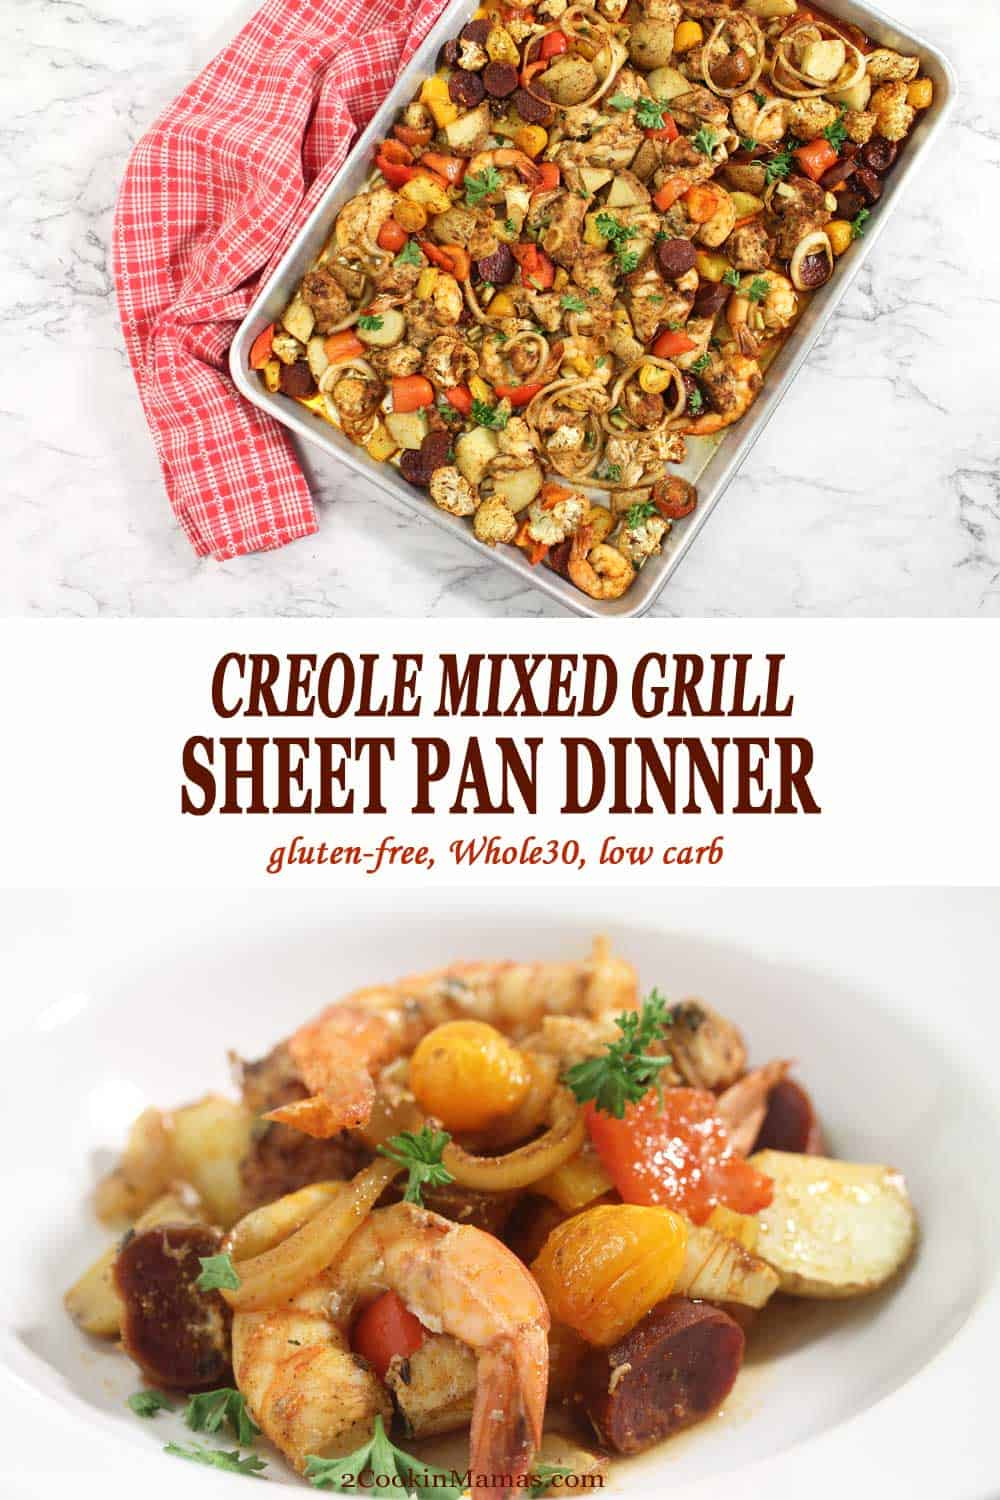 Creole Mixed Grill Sheet Pan Dinner | 2 Cookin Mamas This Cajun Mixed Grill Sheet Pan dinner is a simple, hearty meal for any night of the week. Just one baking pan holds a medley of shrimp, chicken, chorizo, potatoes and seasonal vegetables that have been tossed with cajun spices. Easy prep, easy cleanup and you've got one delicious dinner.#dinner #recipe #shrimp #chicken #chorizo #sheetpandinner #easyrecipe #mixedgrill #creole